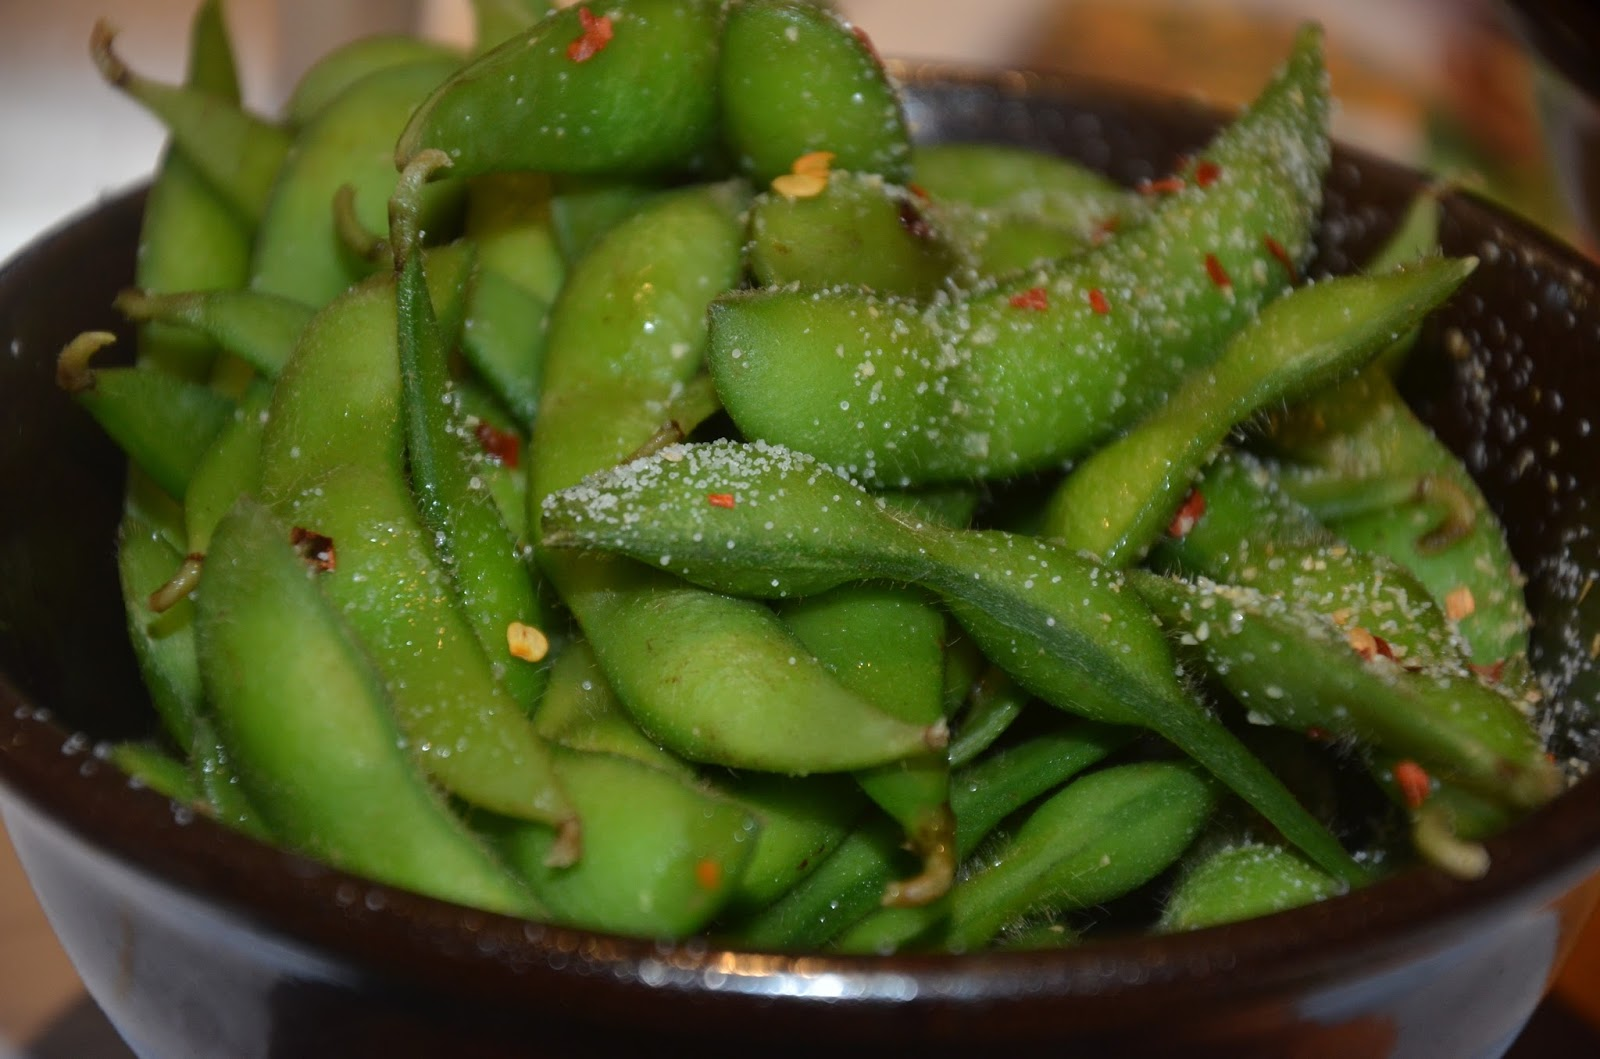 salt and chilli on edamame soya beans